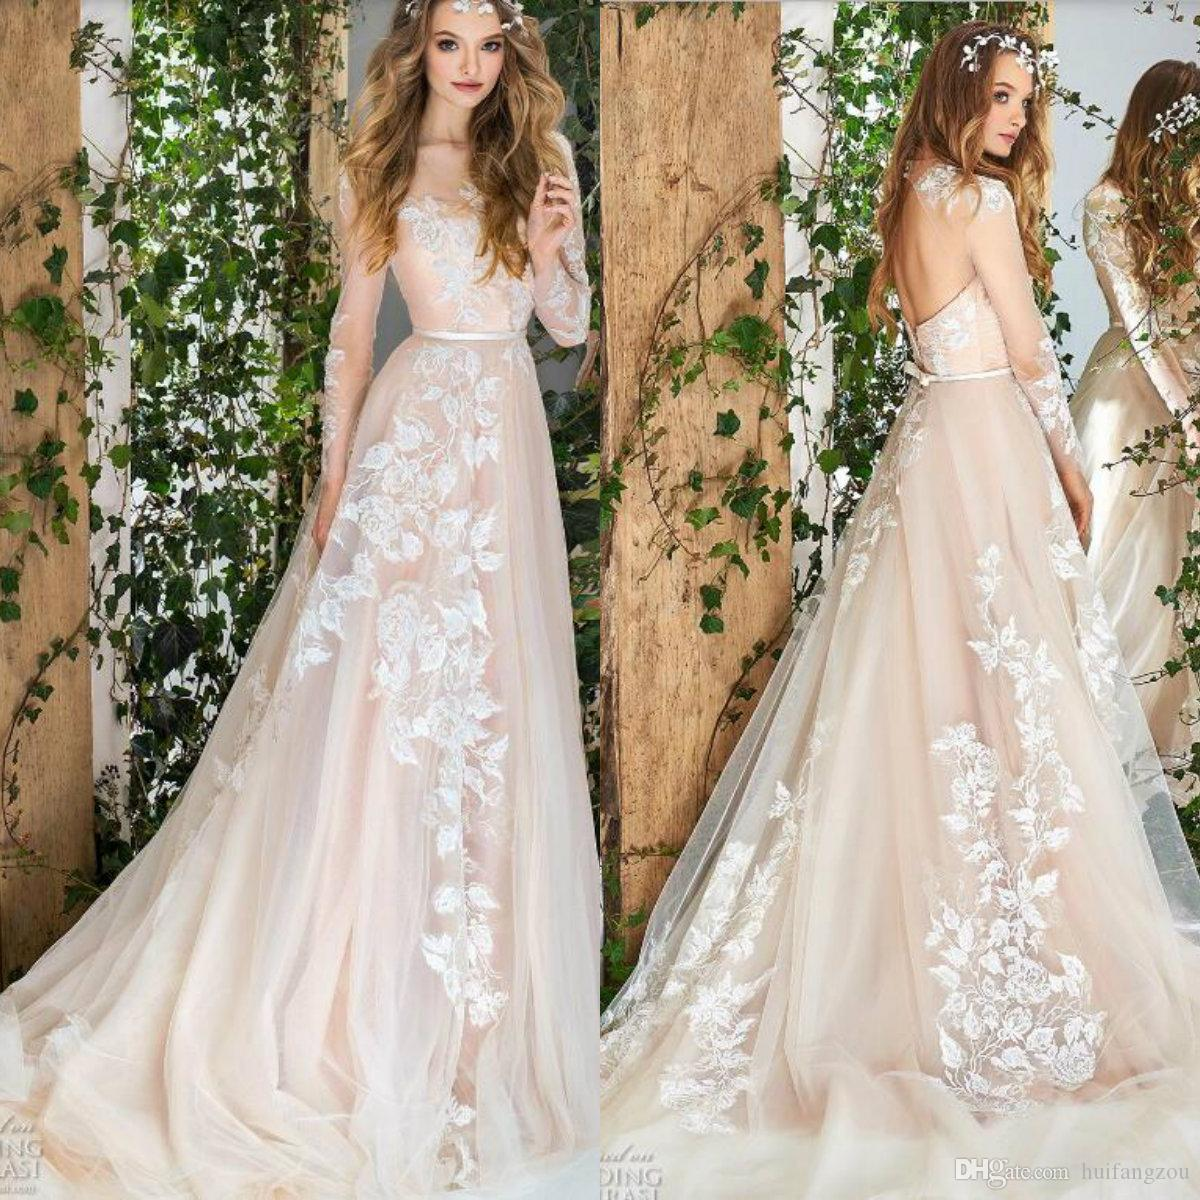 d9dd2263061 Discount Papilio 2018 Light Champagne Wedding Dress Sexy Sheer Neck  Backless Long Sleeves Tulle Bridal Gowns Elegant Beach Wedding Dresses  Cheap Gowns Cheap ...